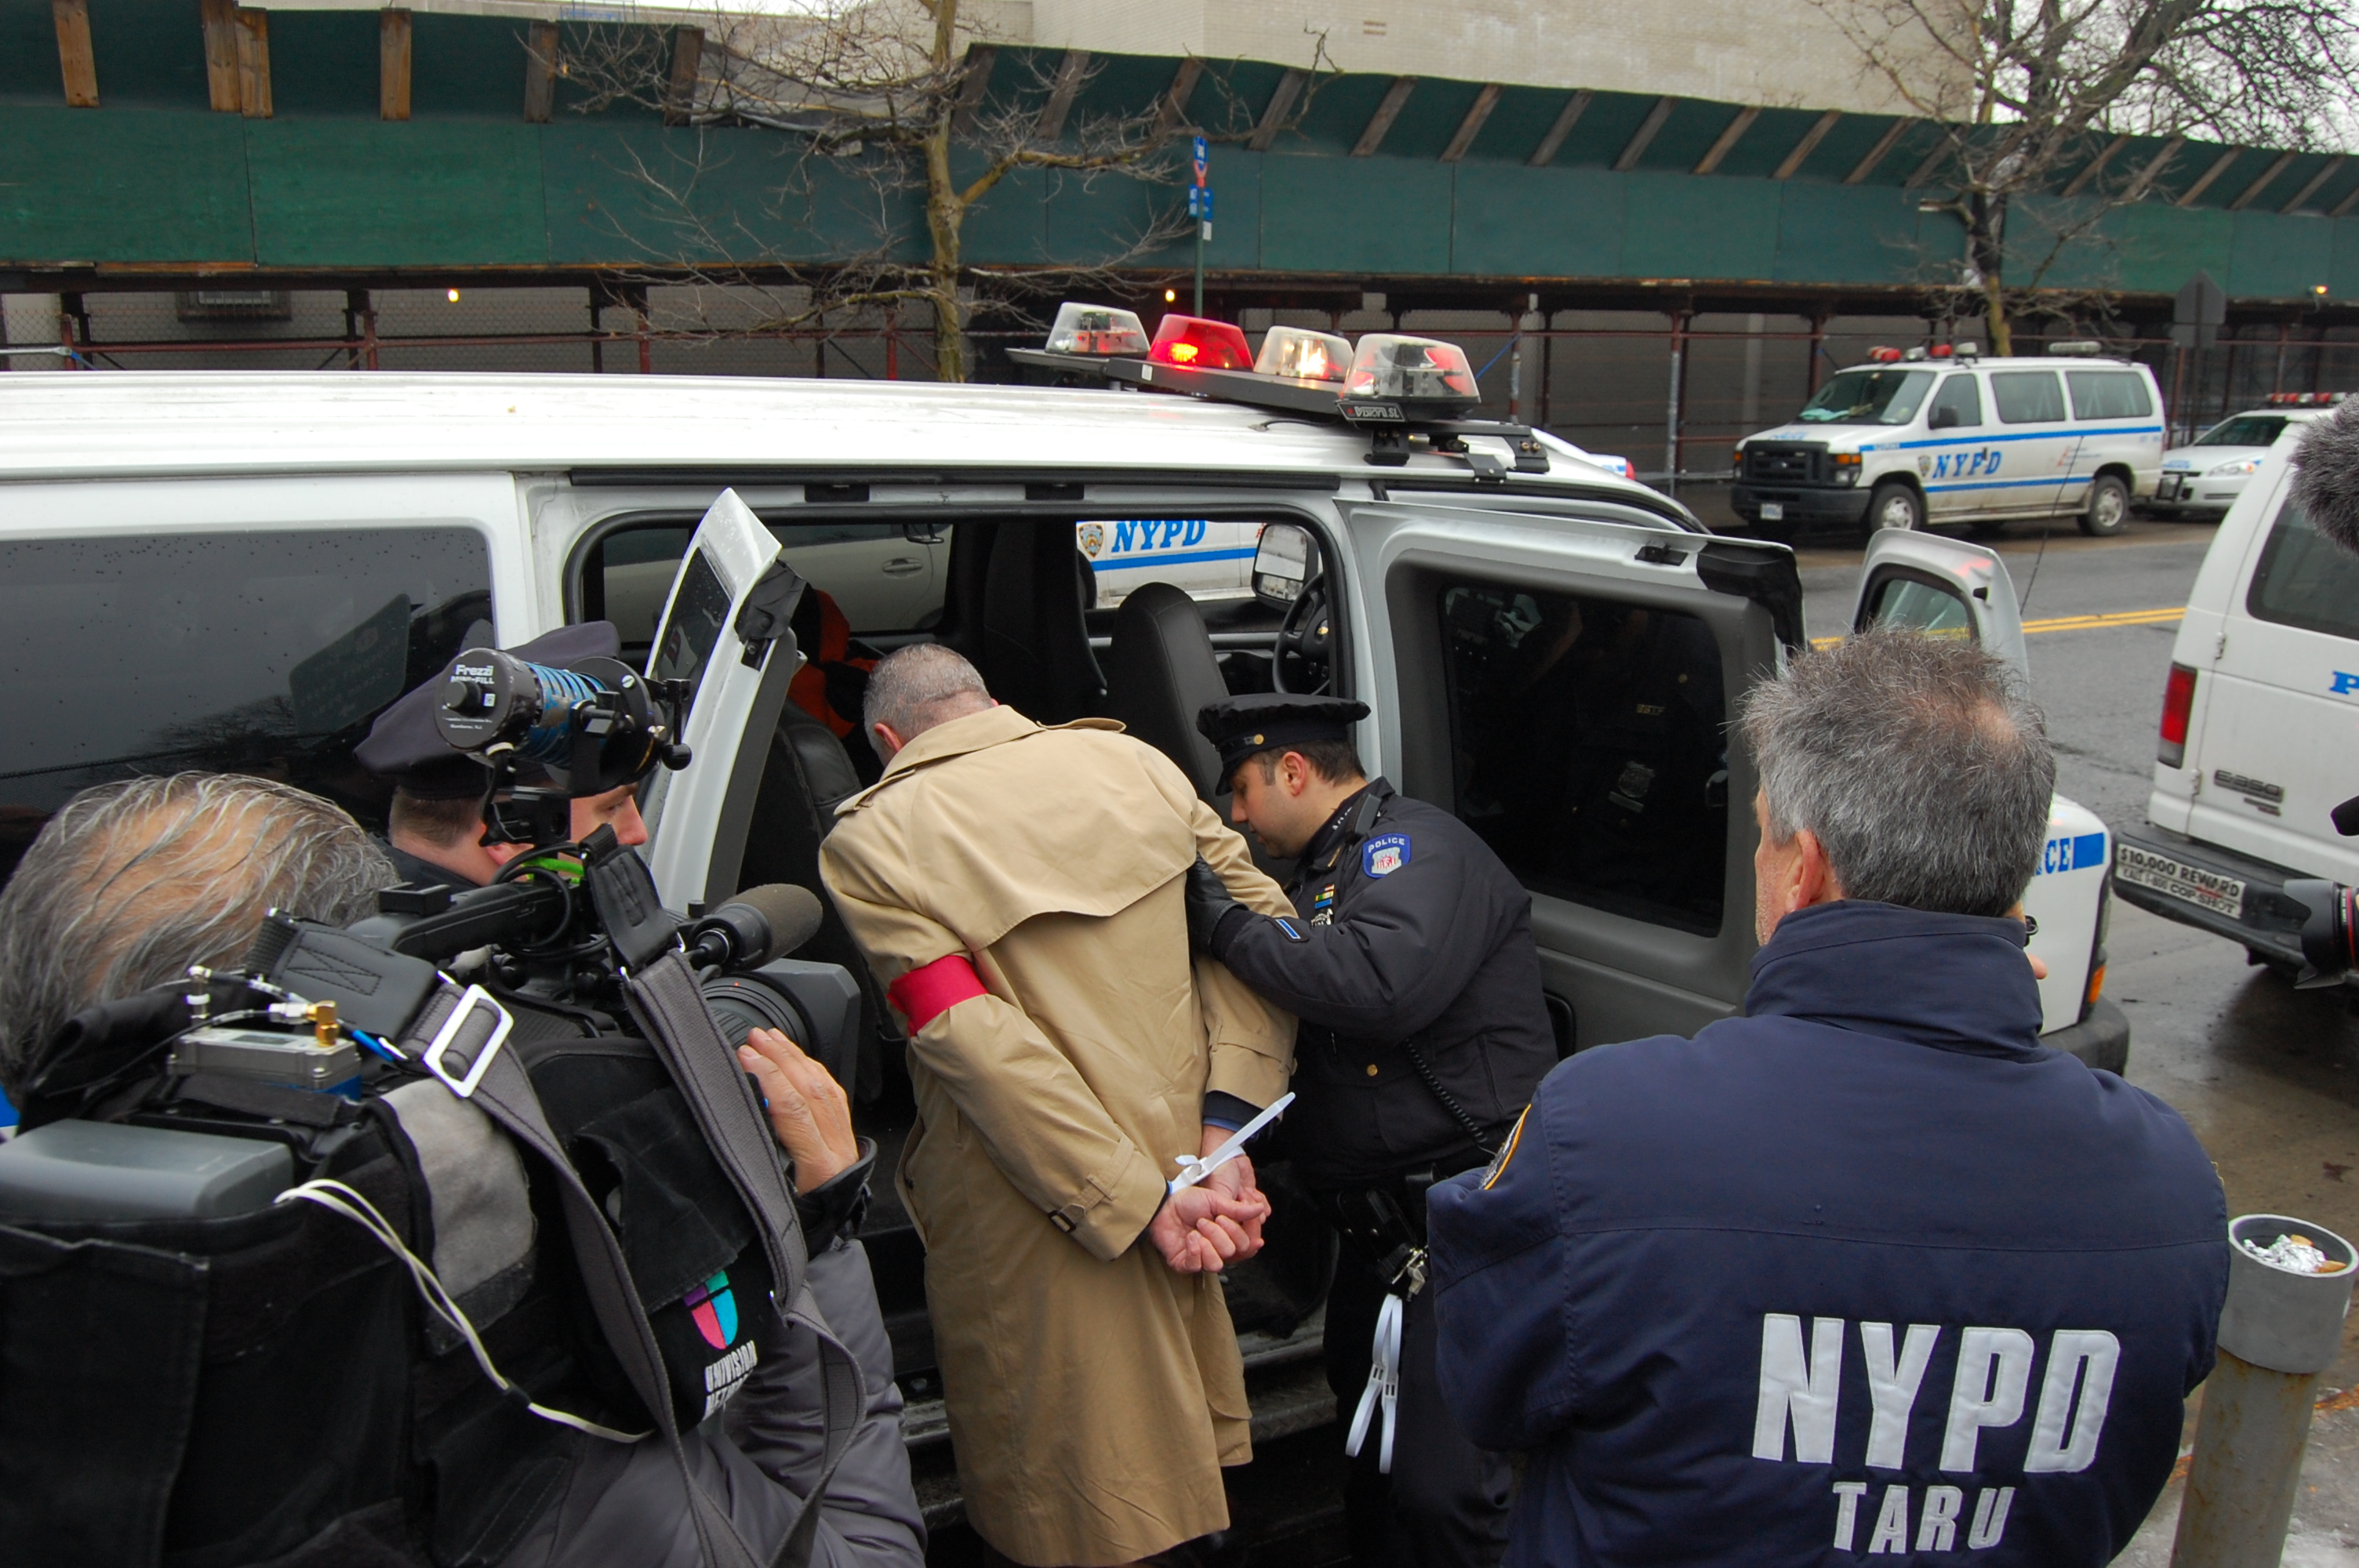 UFCW International President Marc Perrone being arrested at the demonstration